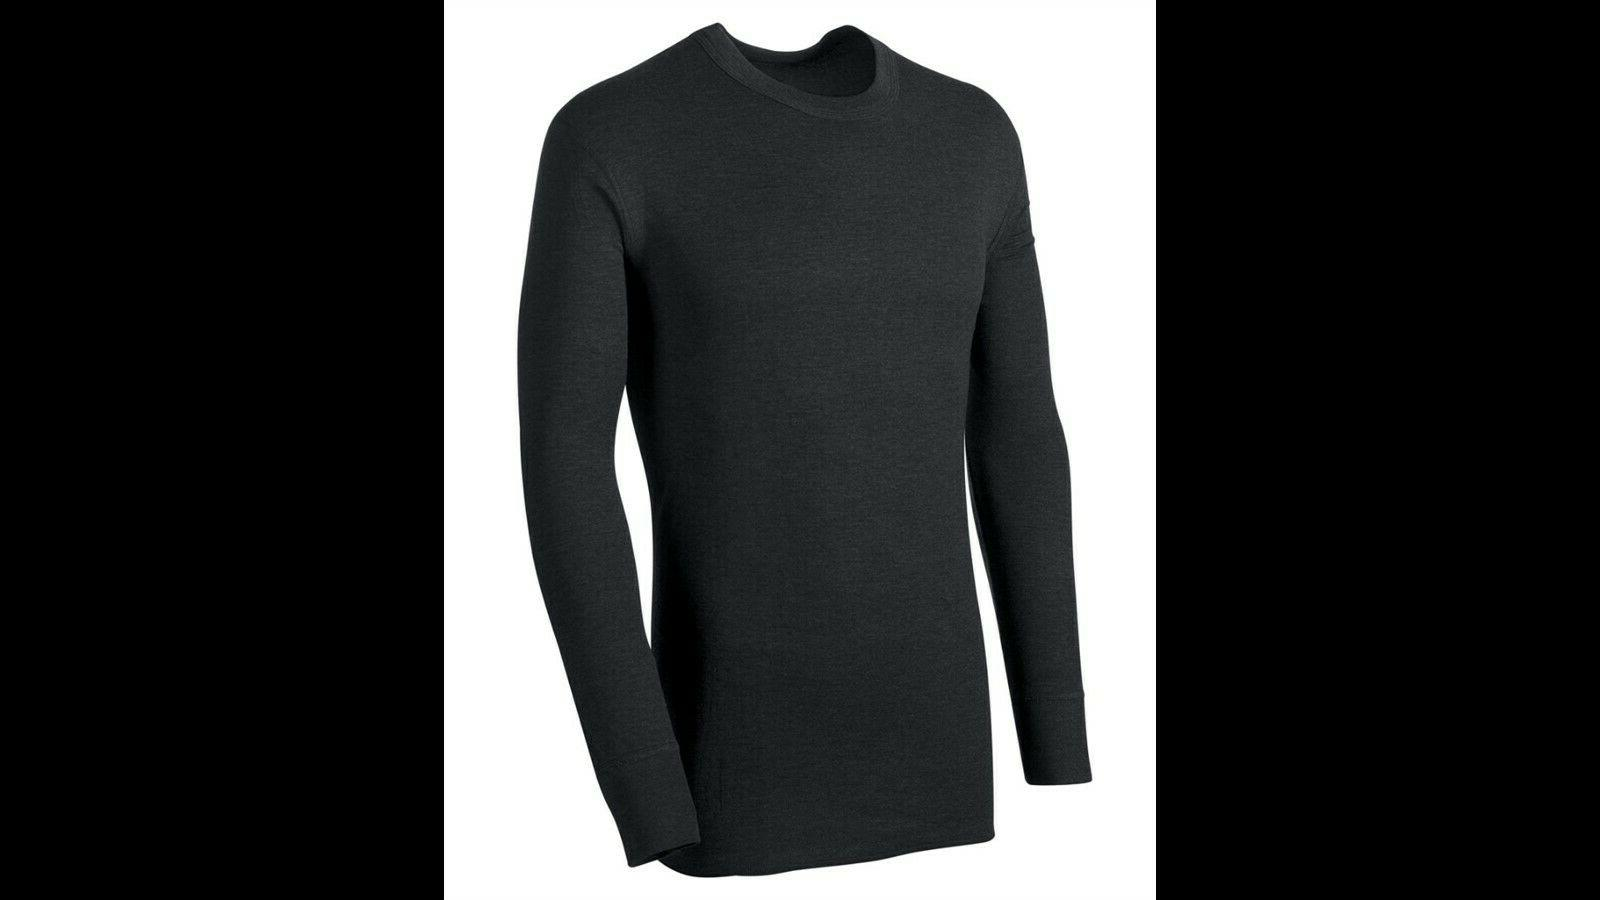 Duofold KMW1 Thermals